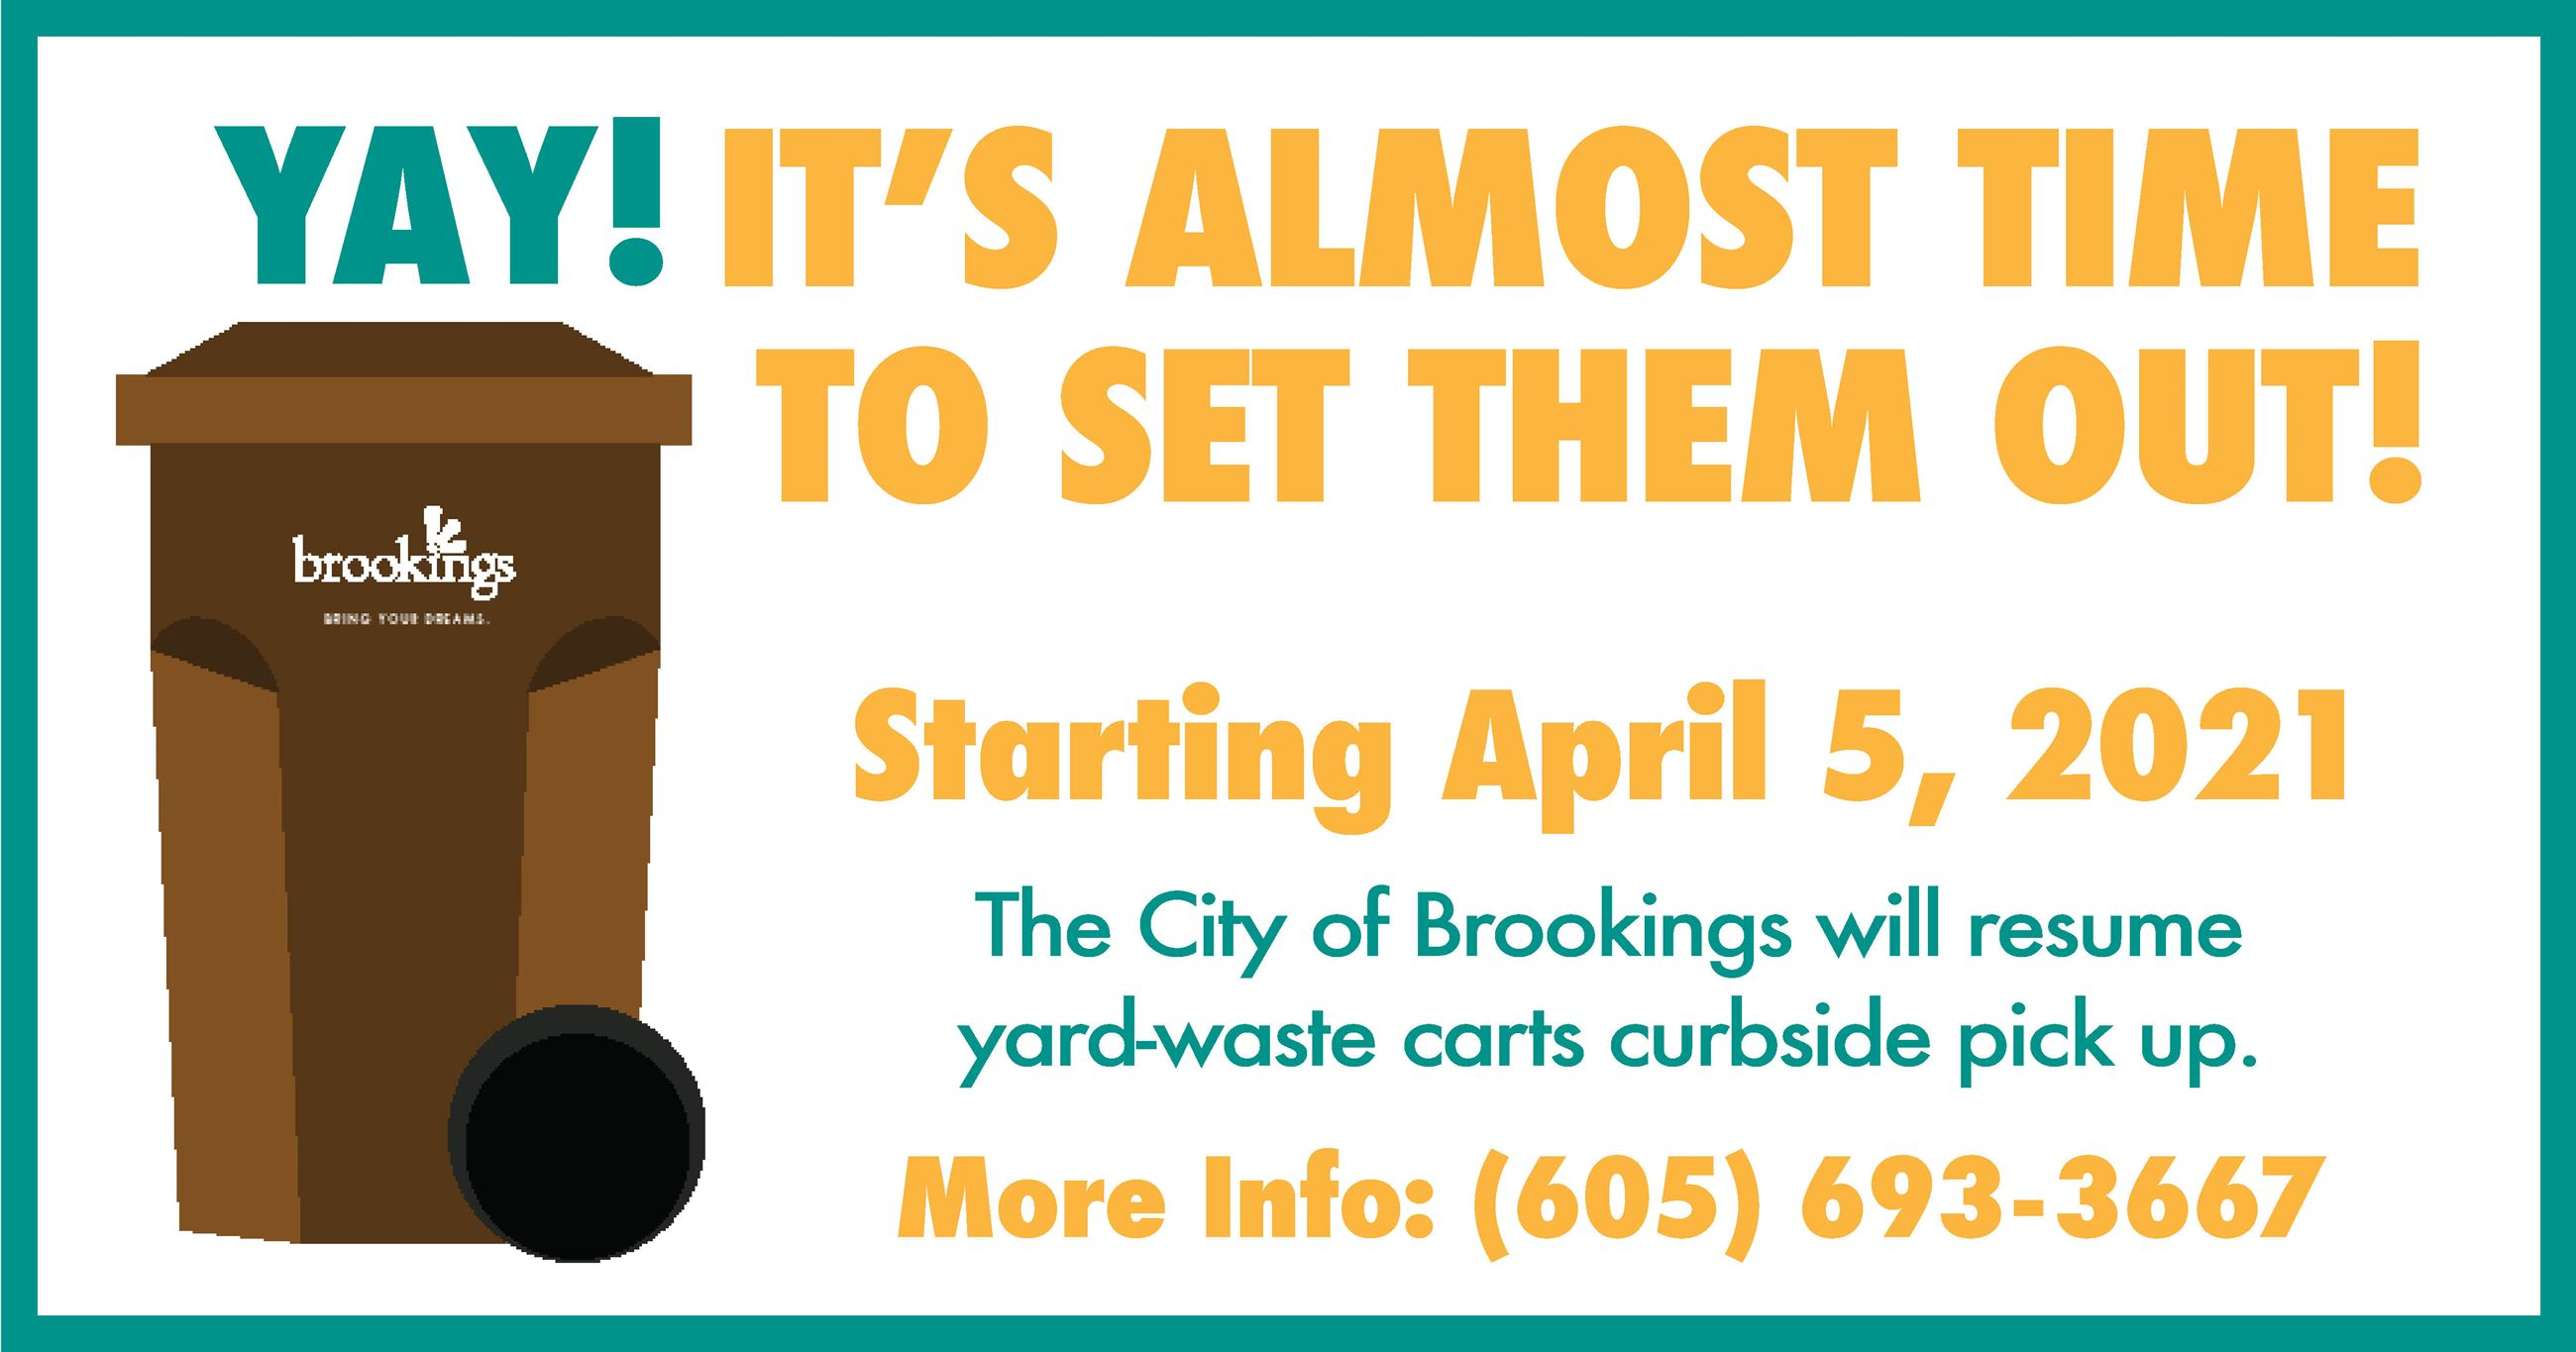 Picture of Yard waste Cart - Text: Yard waste carts will be picked up starting April 5th.